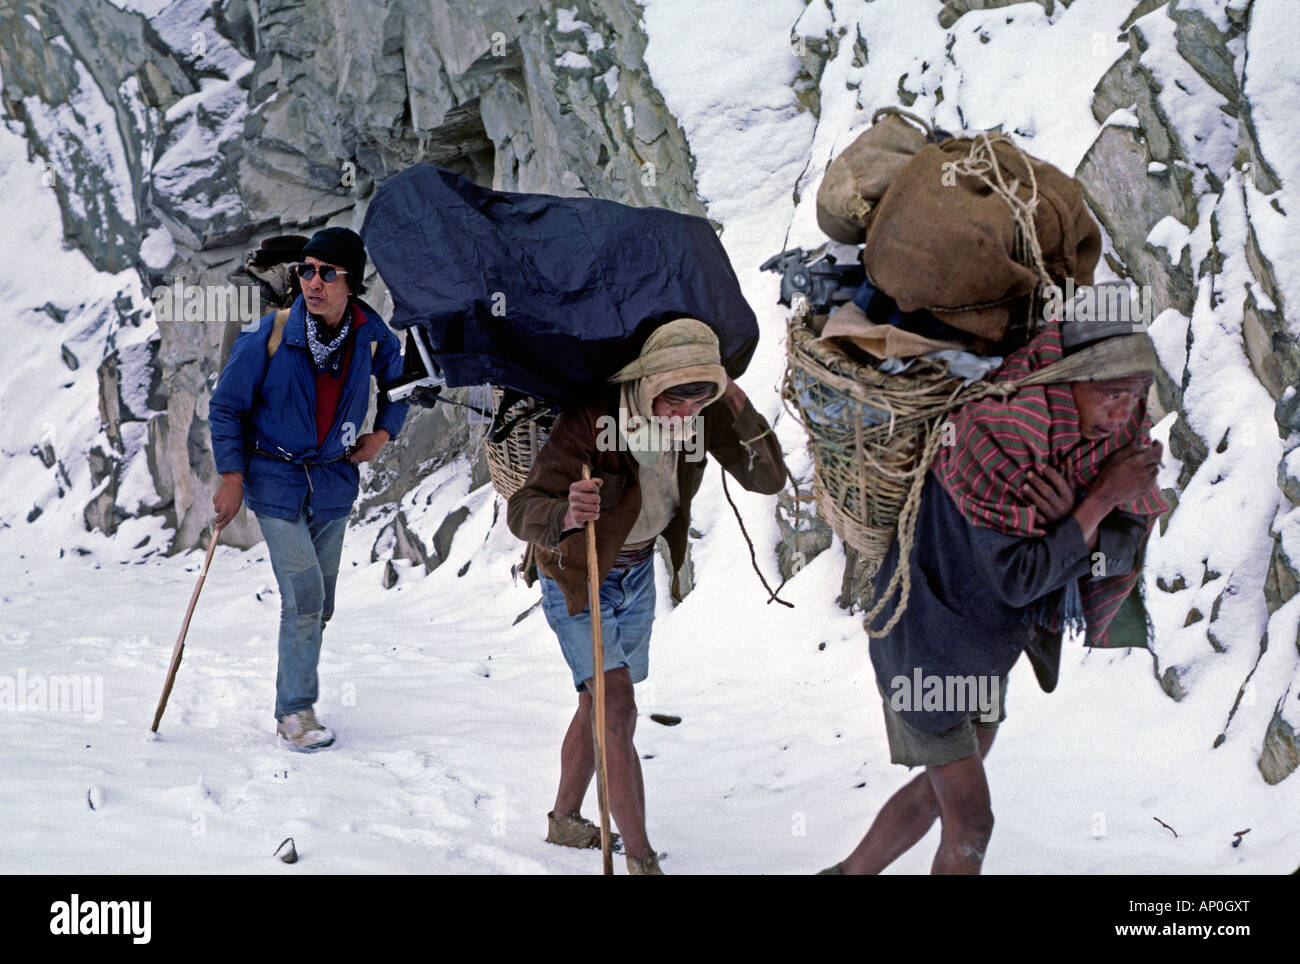 Yeshi my Sirdar head Sherpa porters in the GANESH HIMAL NEPAL - Stock Image